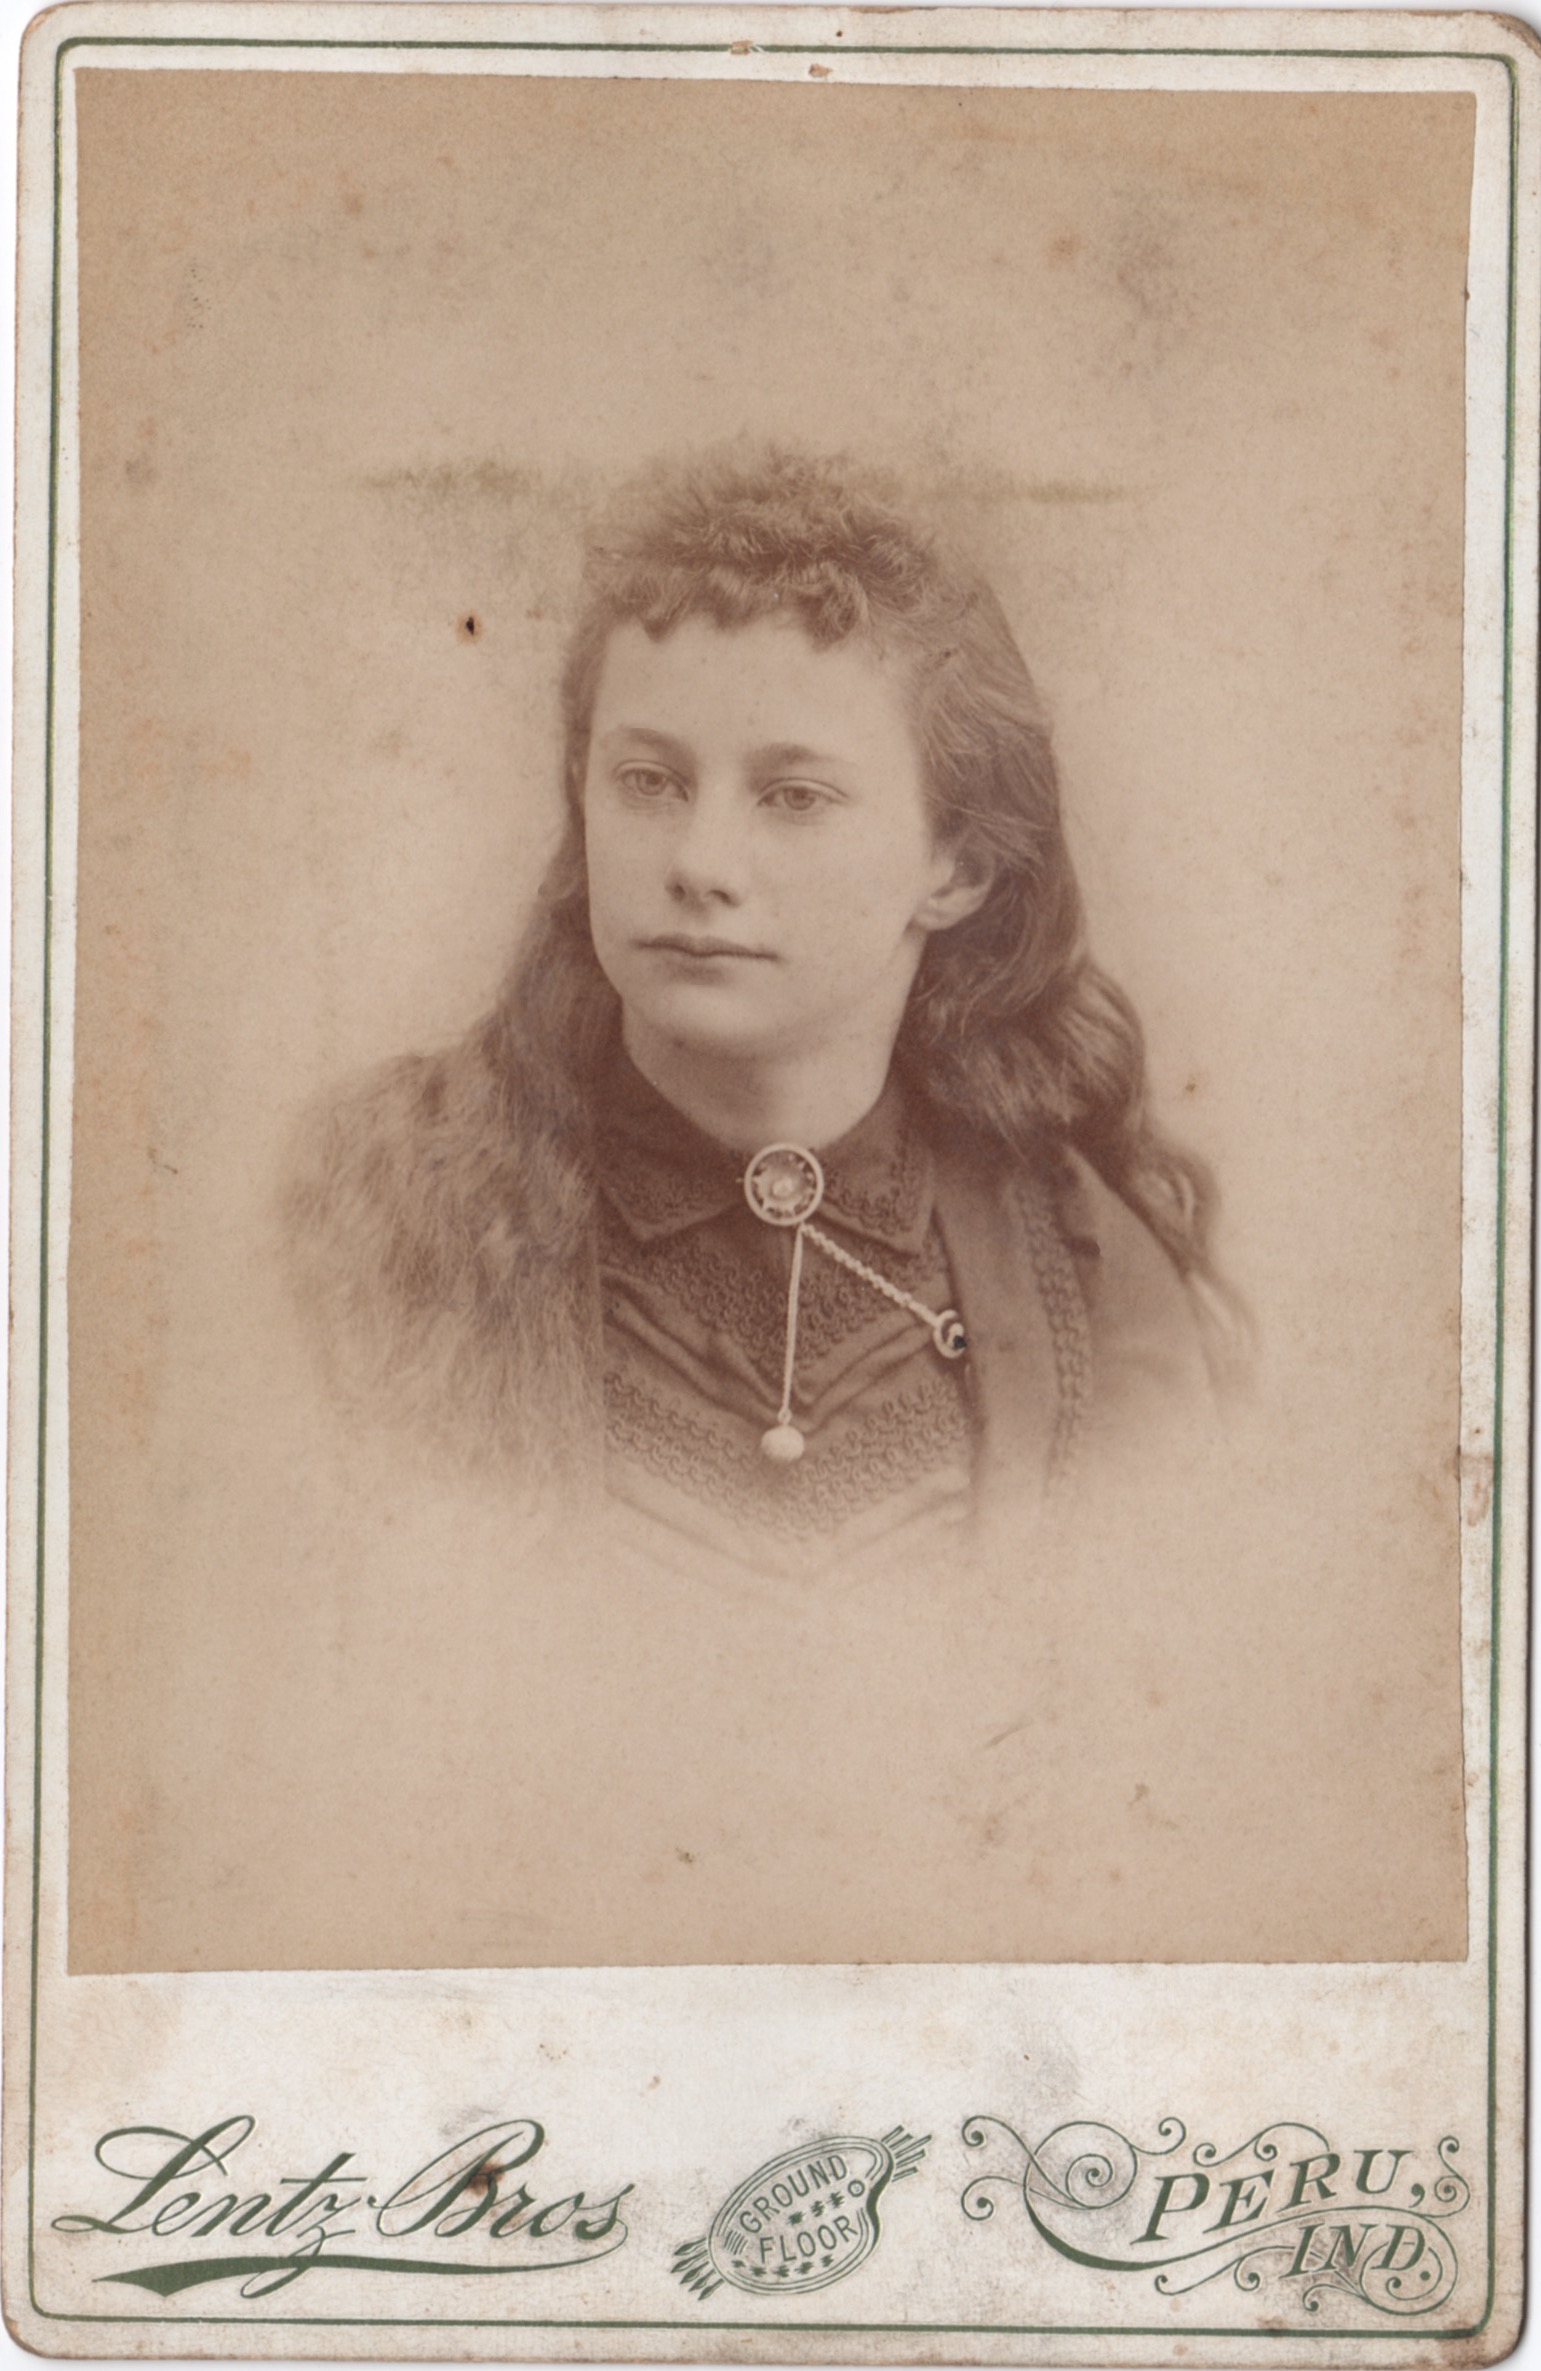 Unidentified woman from the same photo album as Peter Costlow and Matilda Topper Costlow